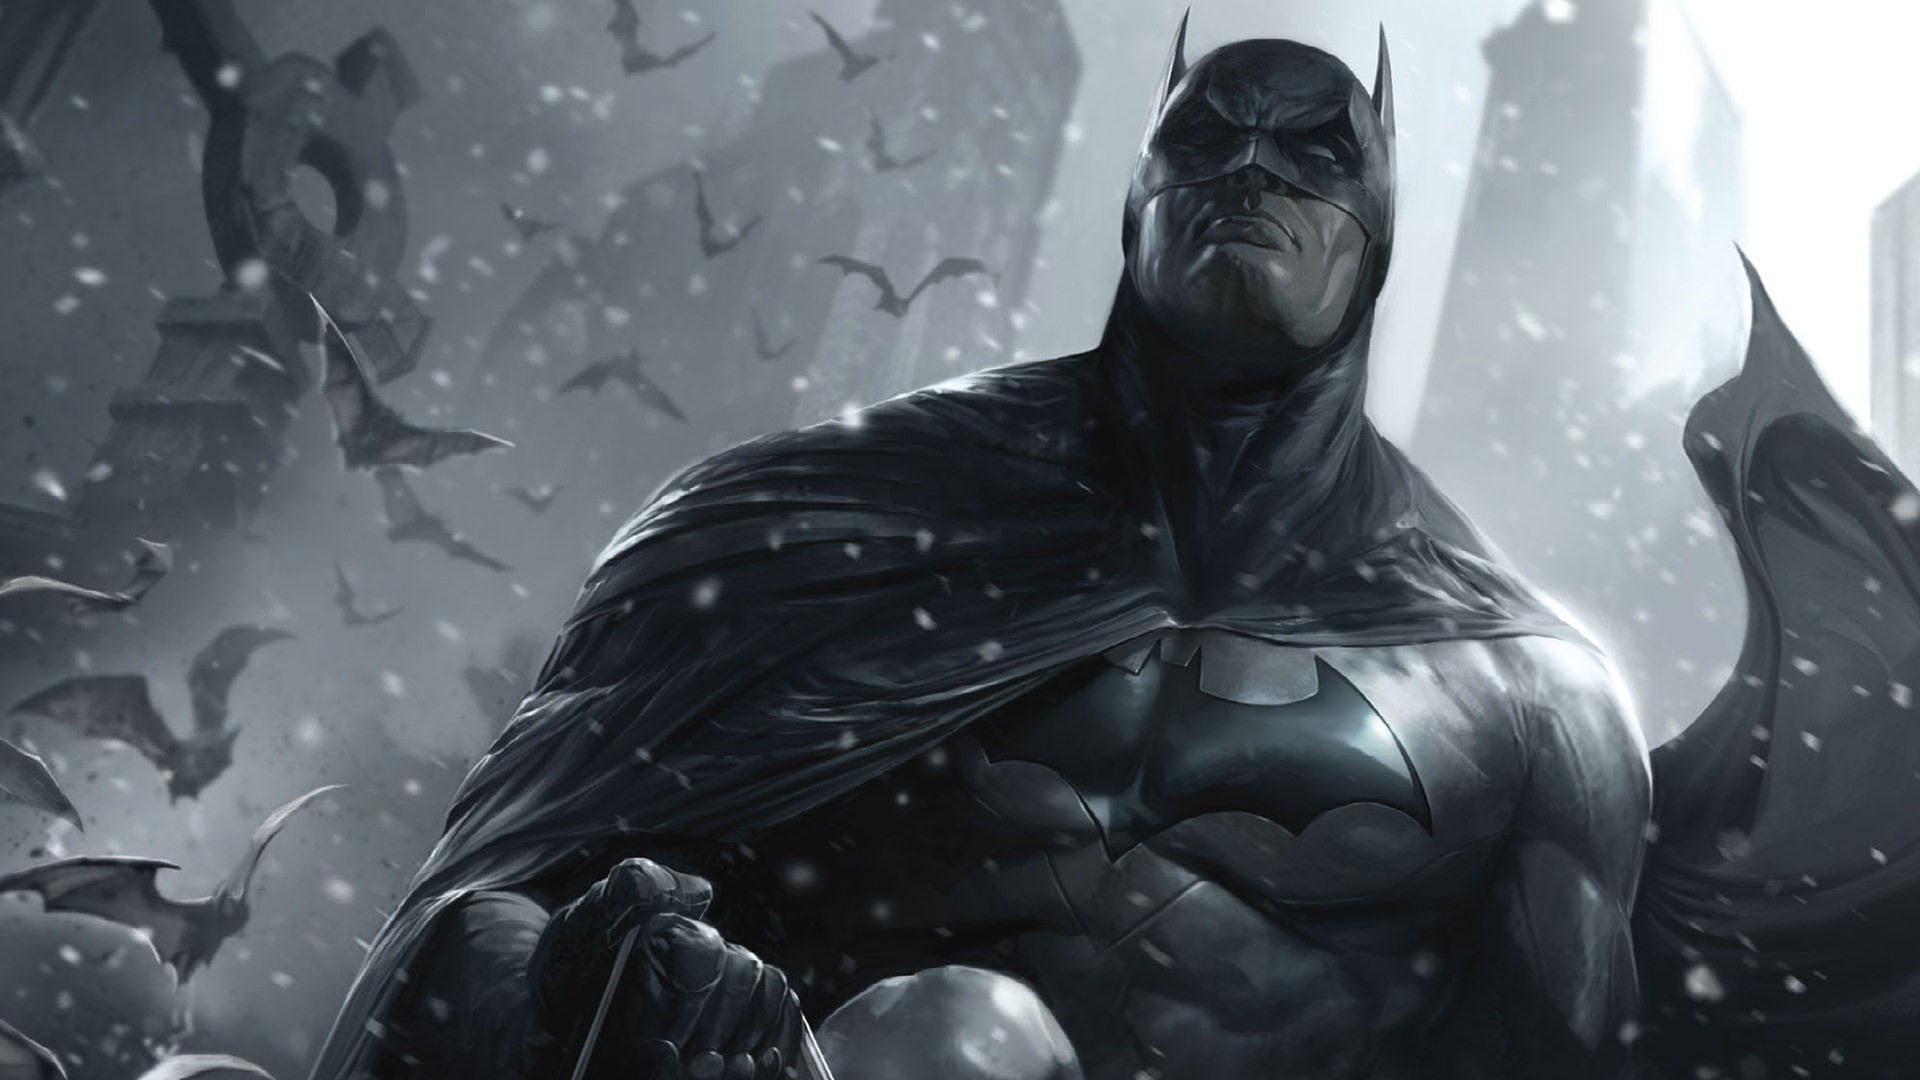 batman in the snow with bats.jpg